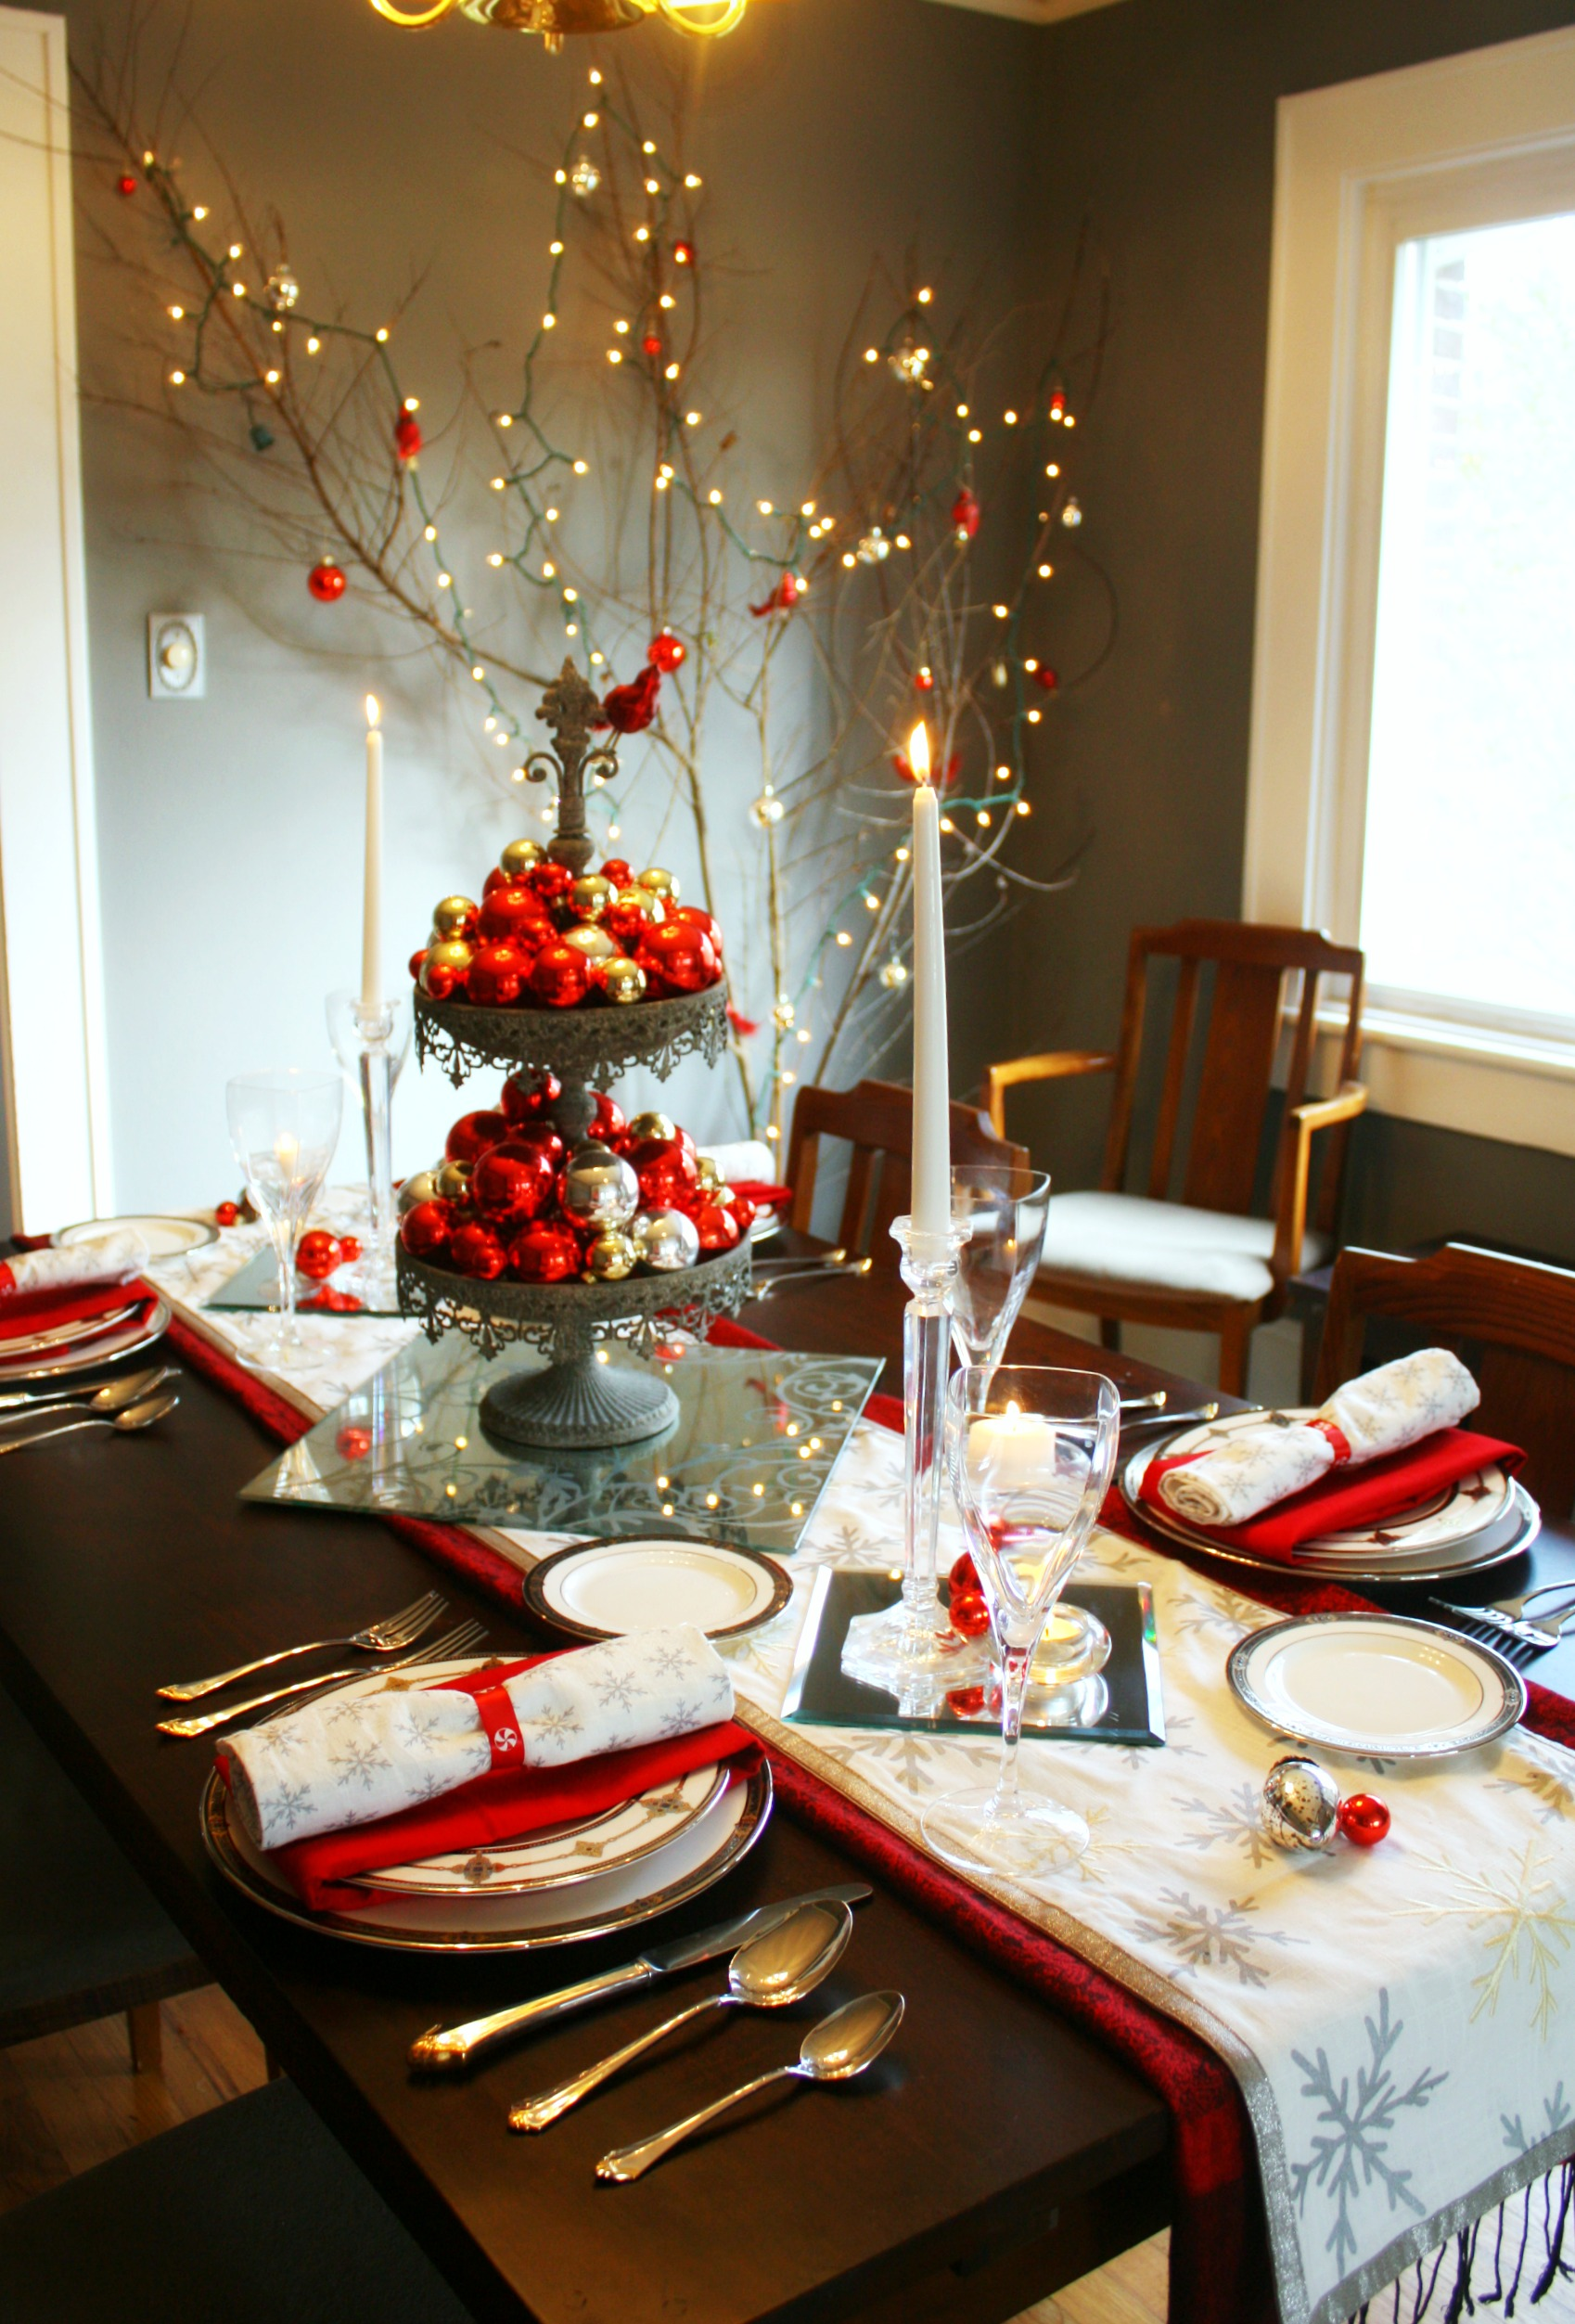 You might recognize some of these tablescape elements from earlier Christmas table ... & Red \u0026 Silver Christmas Table Setting \u2022 Craft Thyme